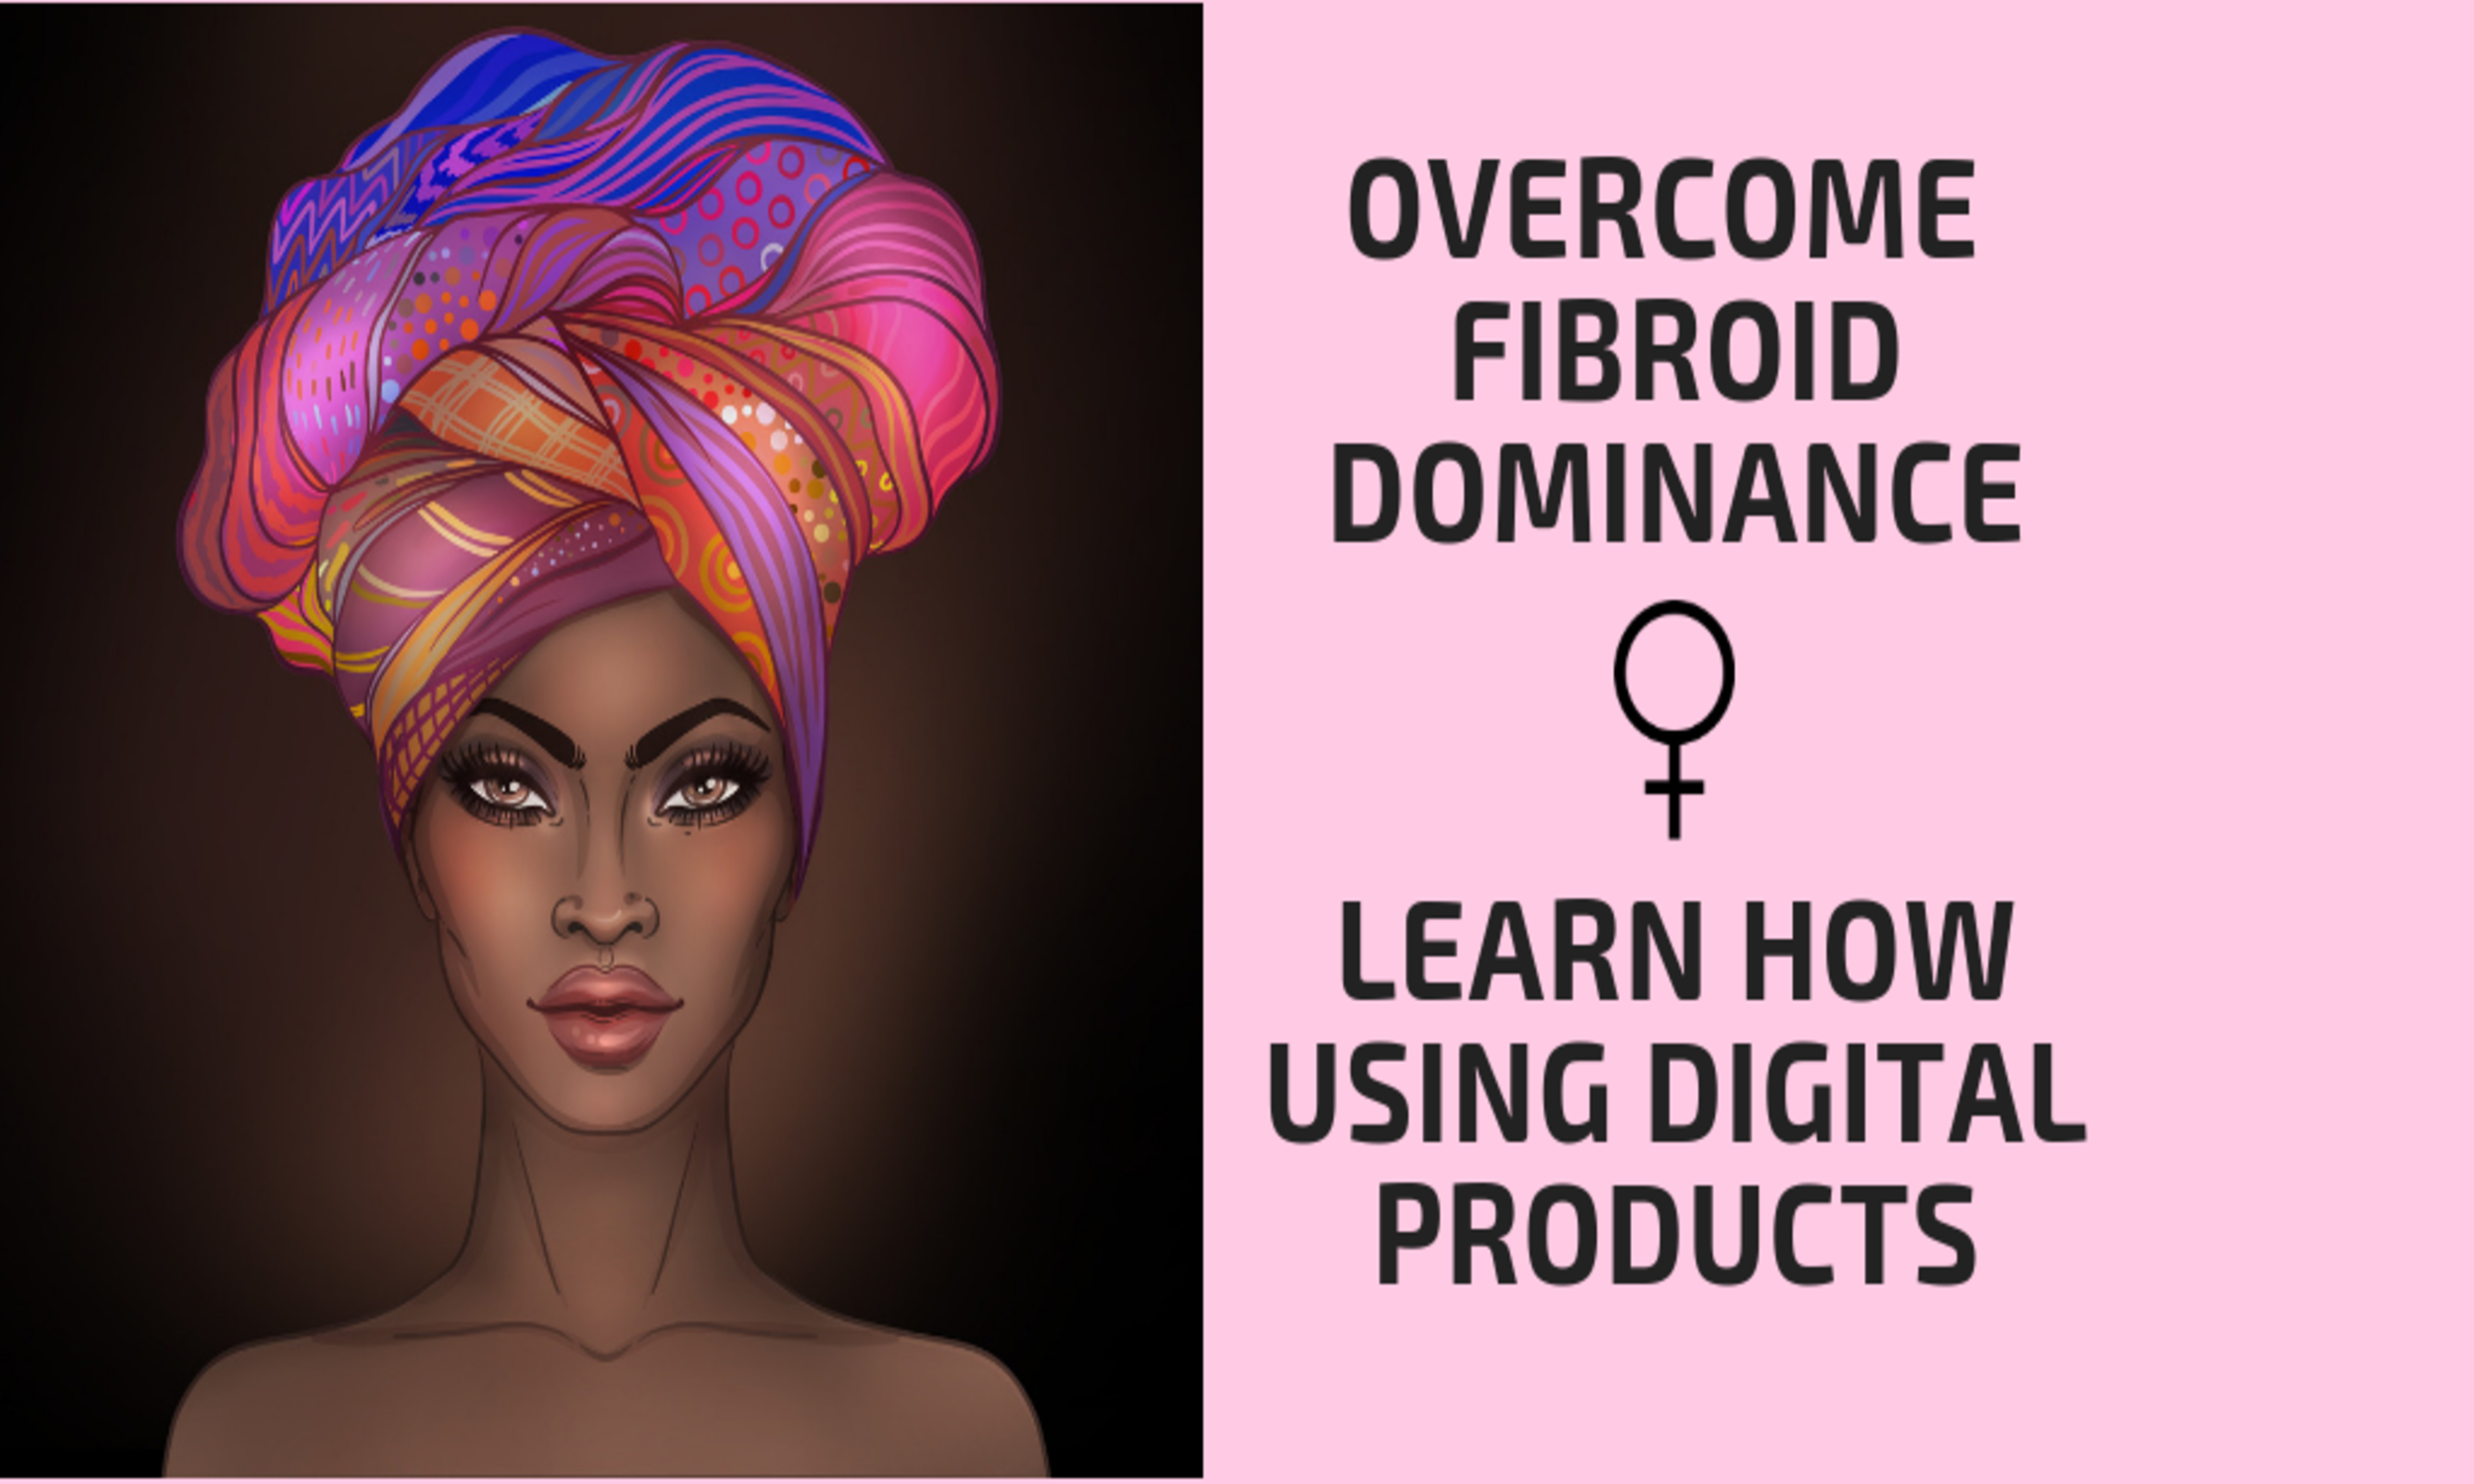 overcome fibroids_digital products1